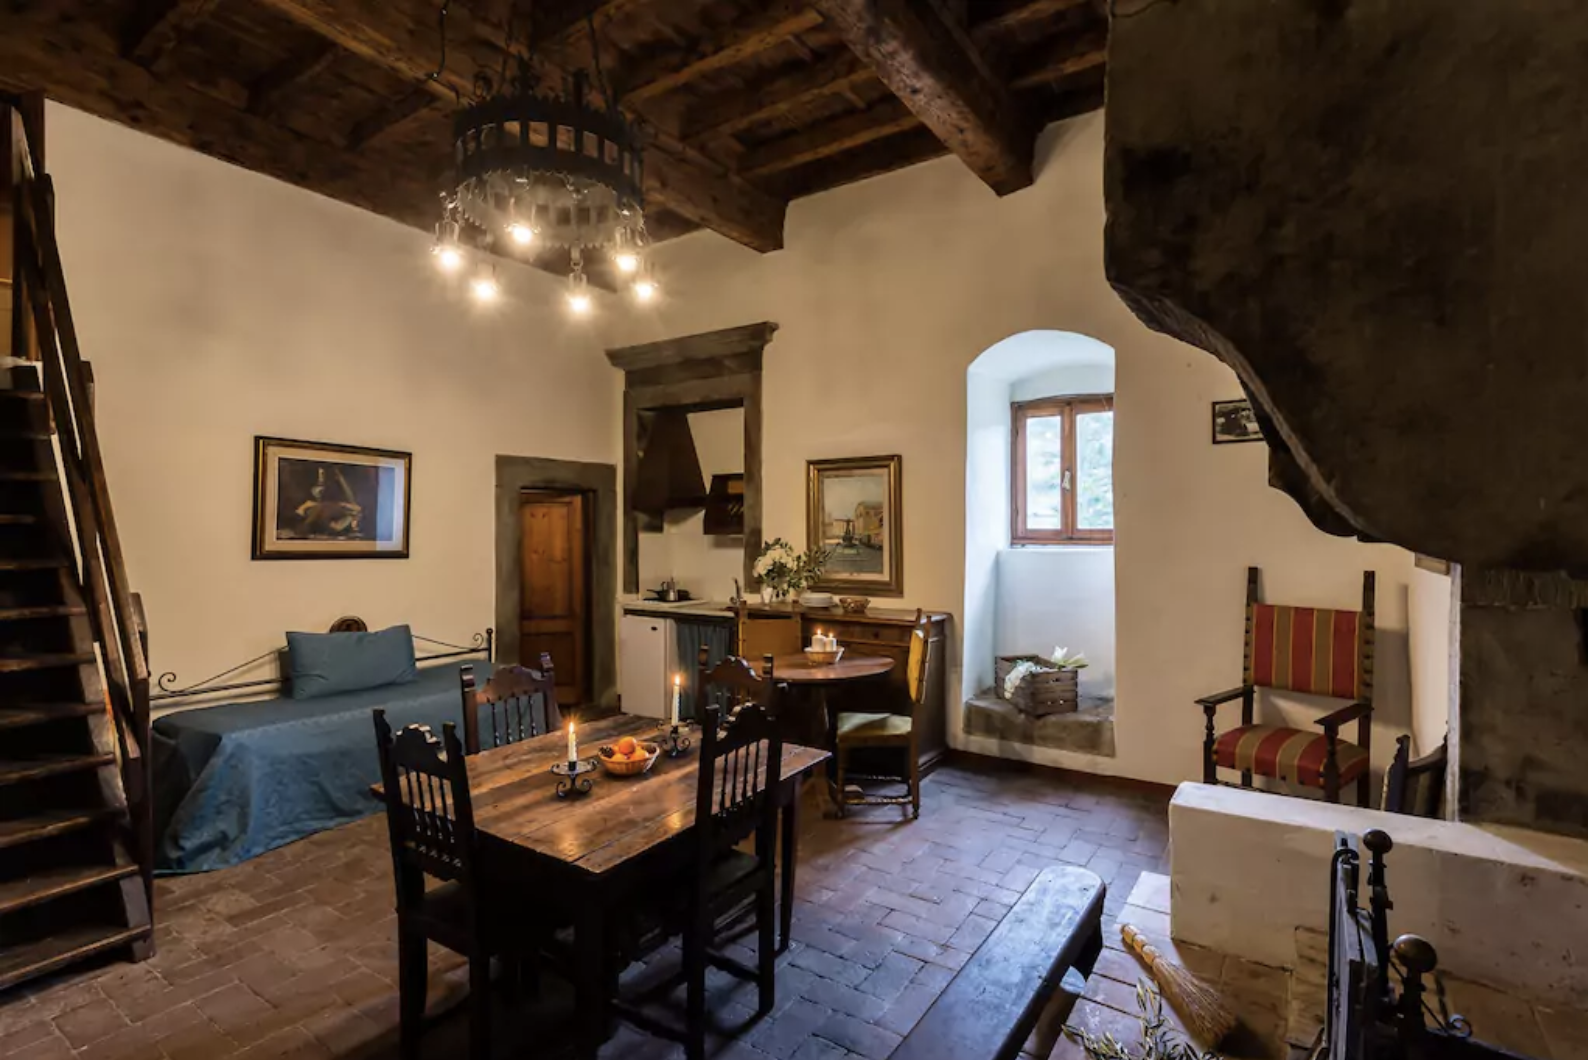 Castello 10 Living Space (Master's Quarters with massive ancient fireplace, sleeps up to 6 guests)